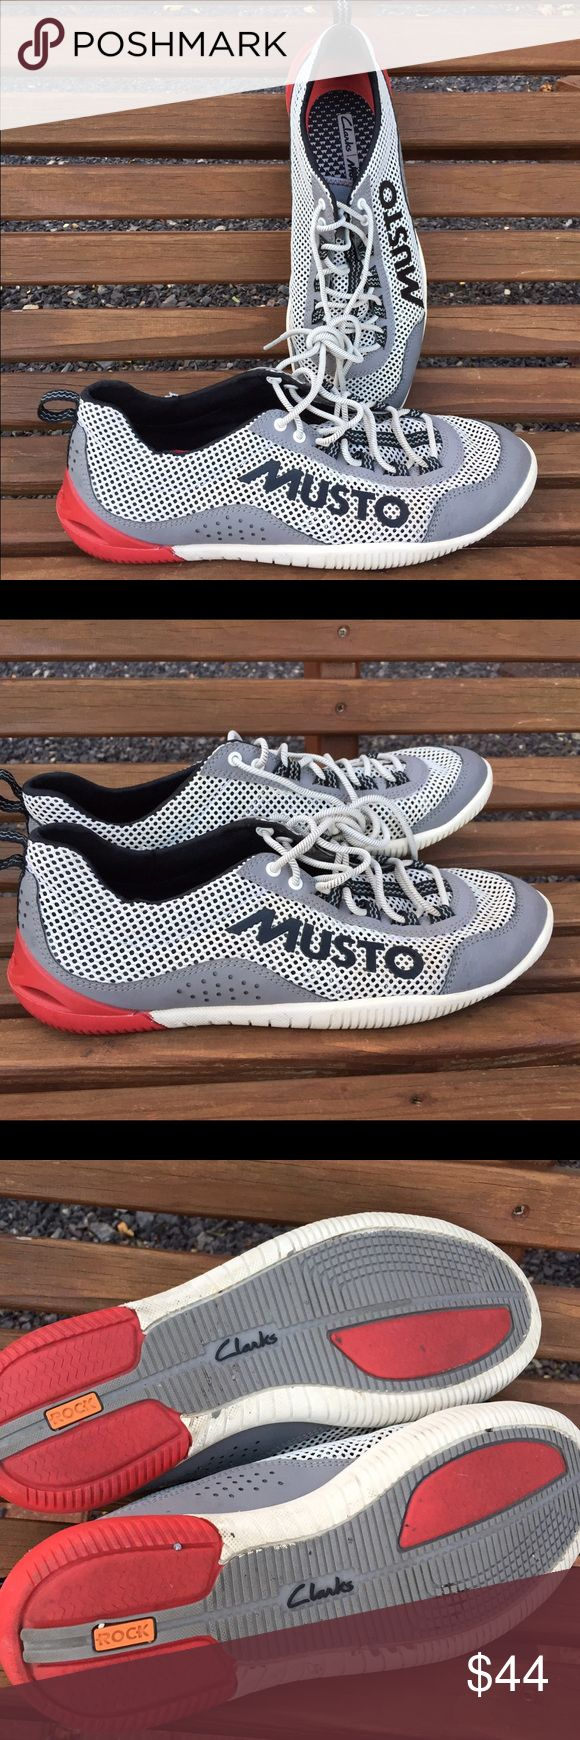 Mens Clarks Musto Lightweight Training Sneakers Size 9.5 medium. Worn twice. Has a small area on one side where there was a bit of damage from removing original tag. See last picture for details. Super hard to find Clarks Shoes Sneakers